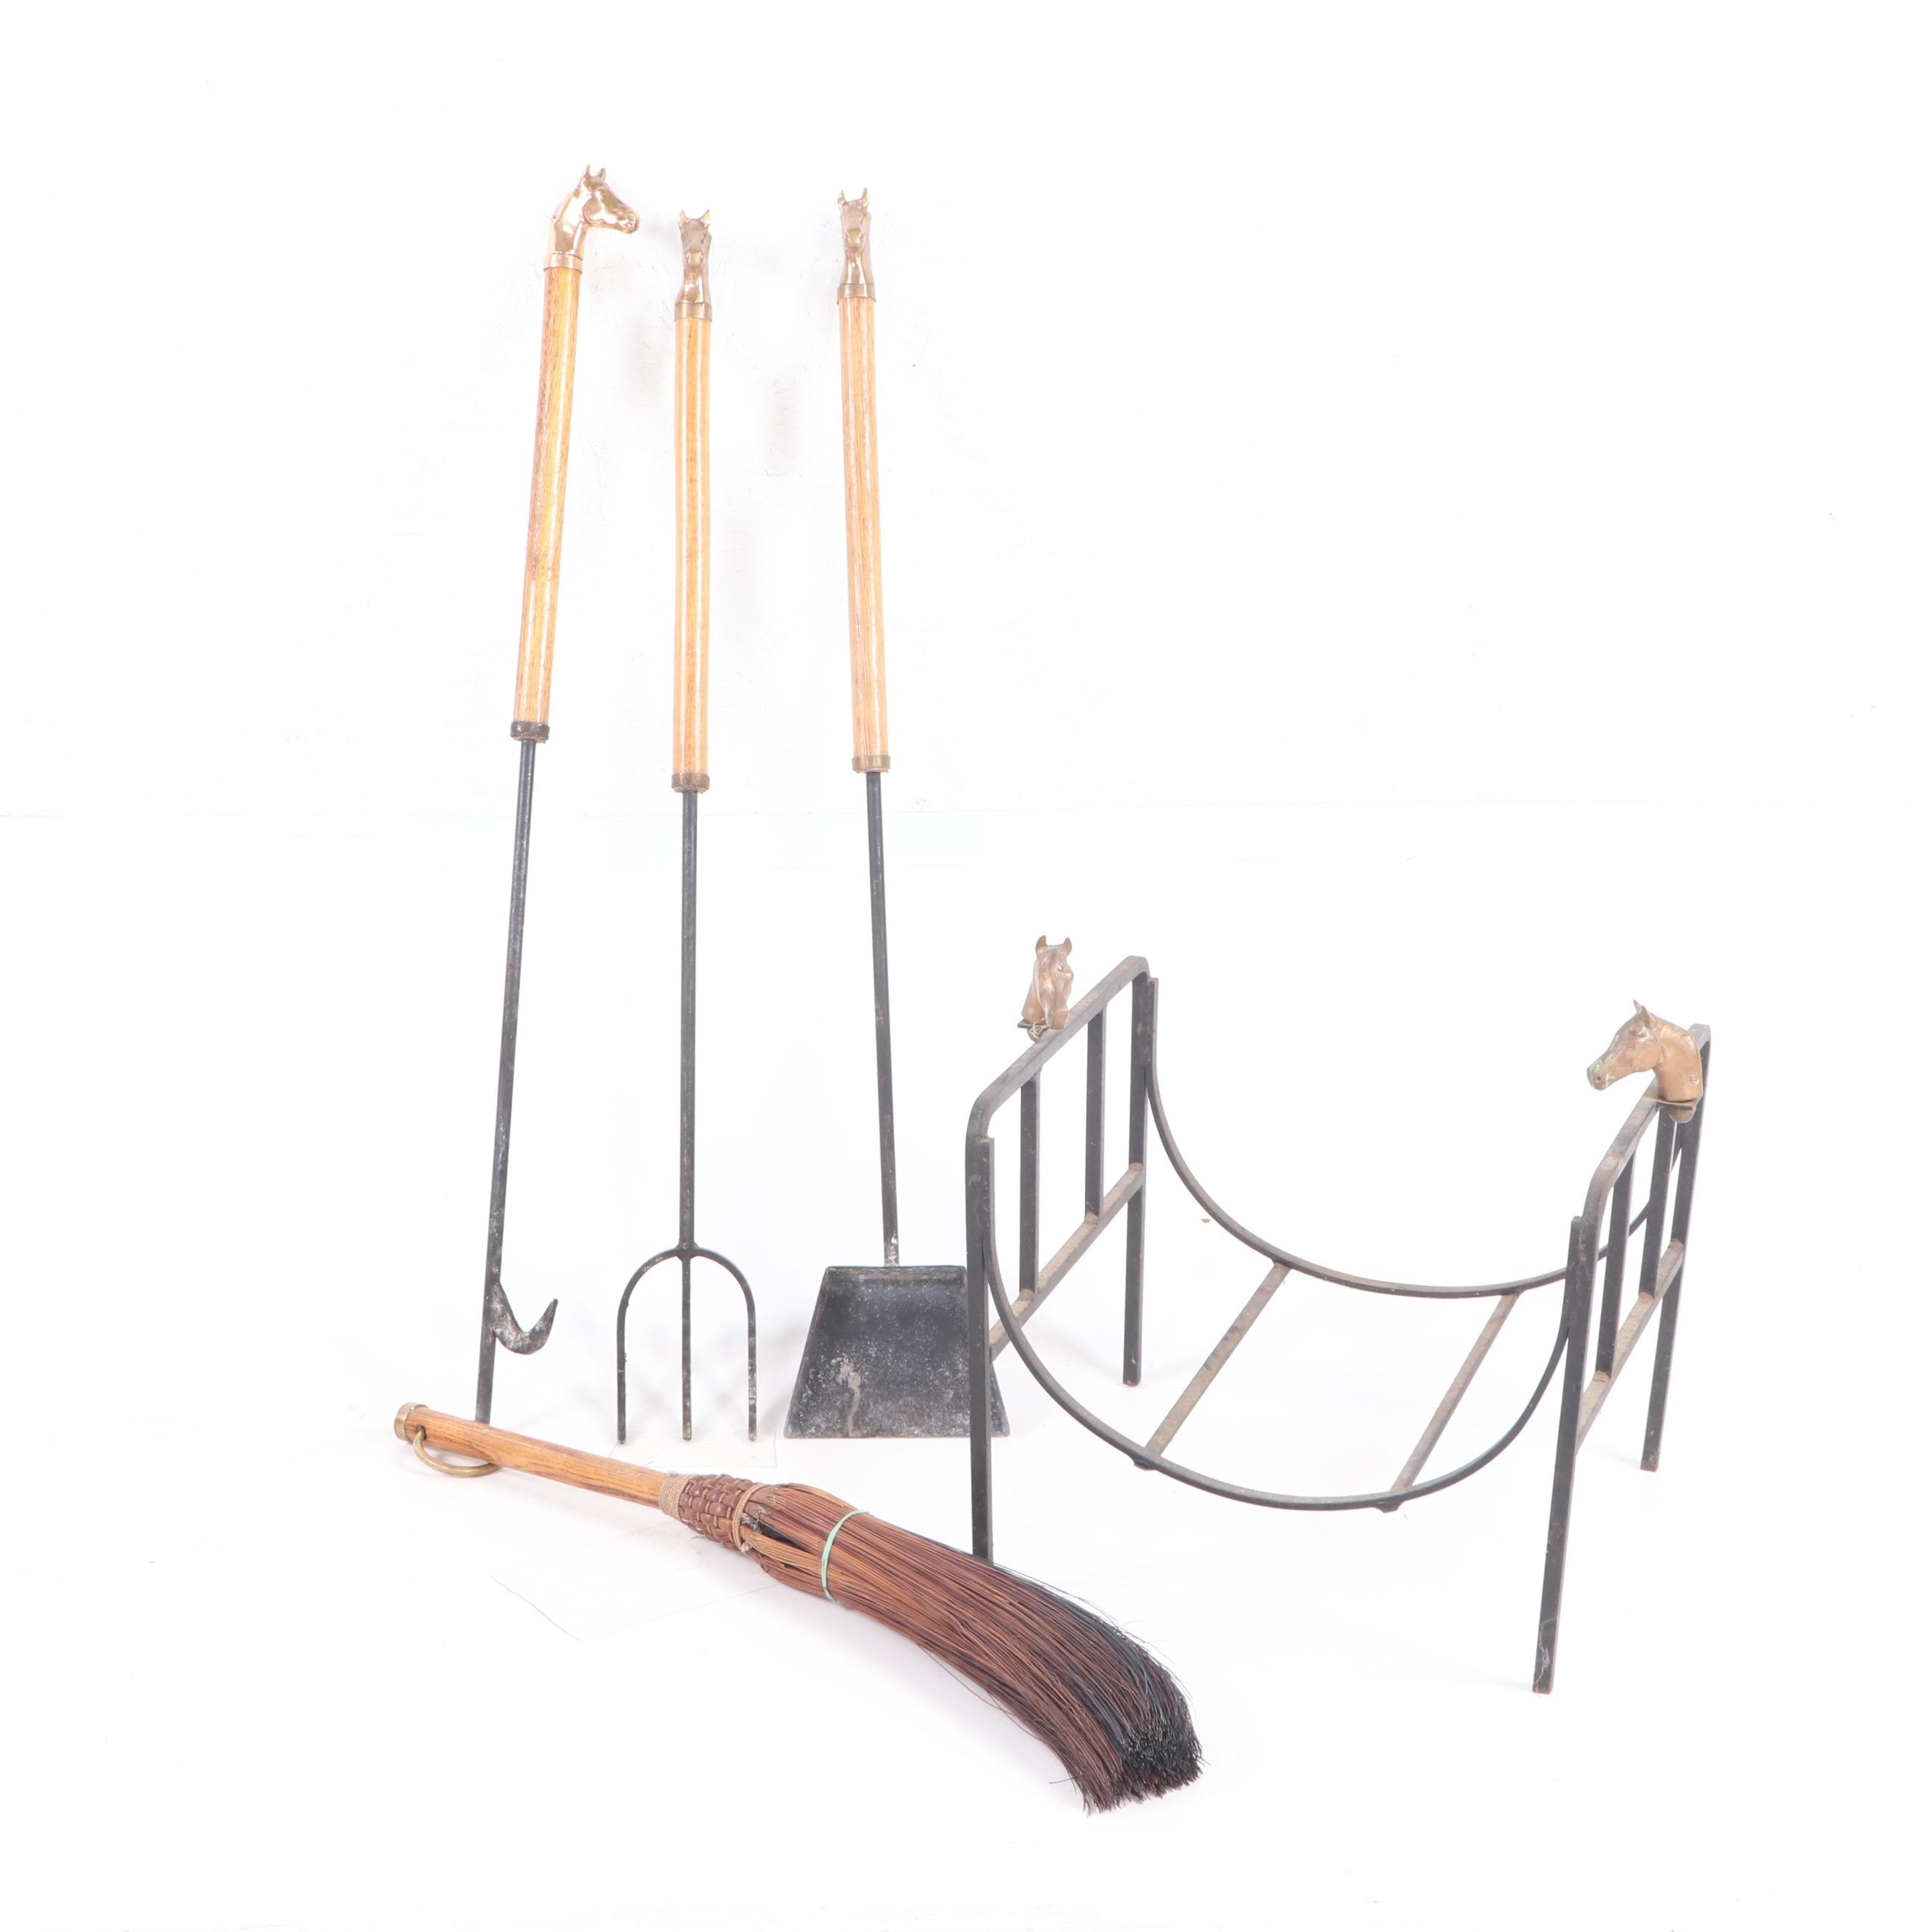 Fireplace Tools and Accessories with Brass Horse Accents, Mid-Century